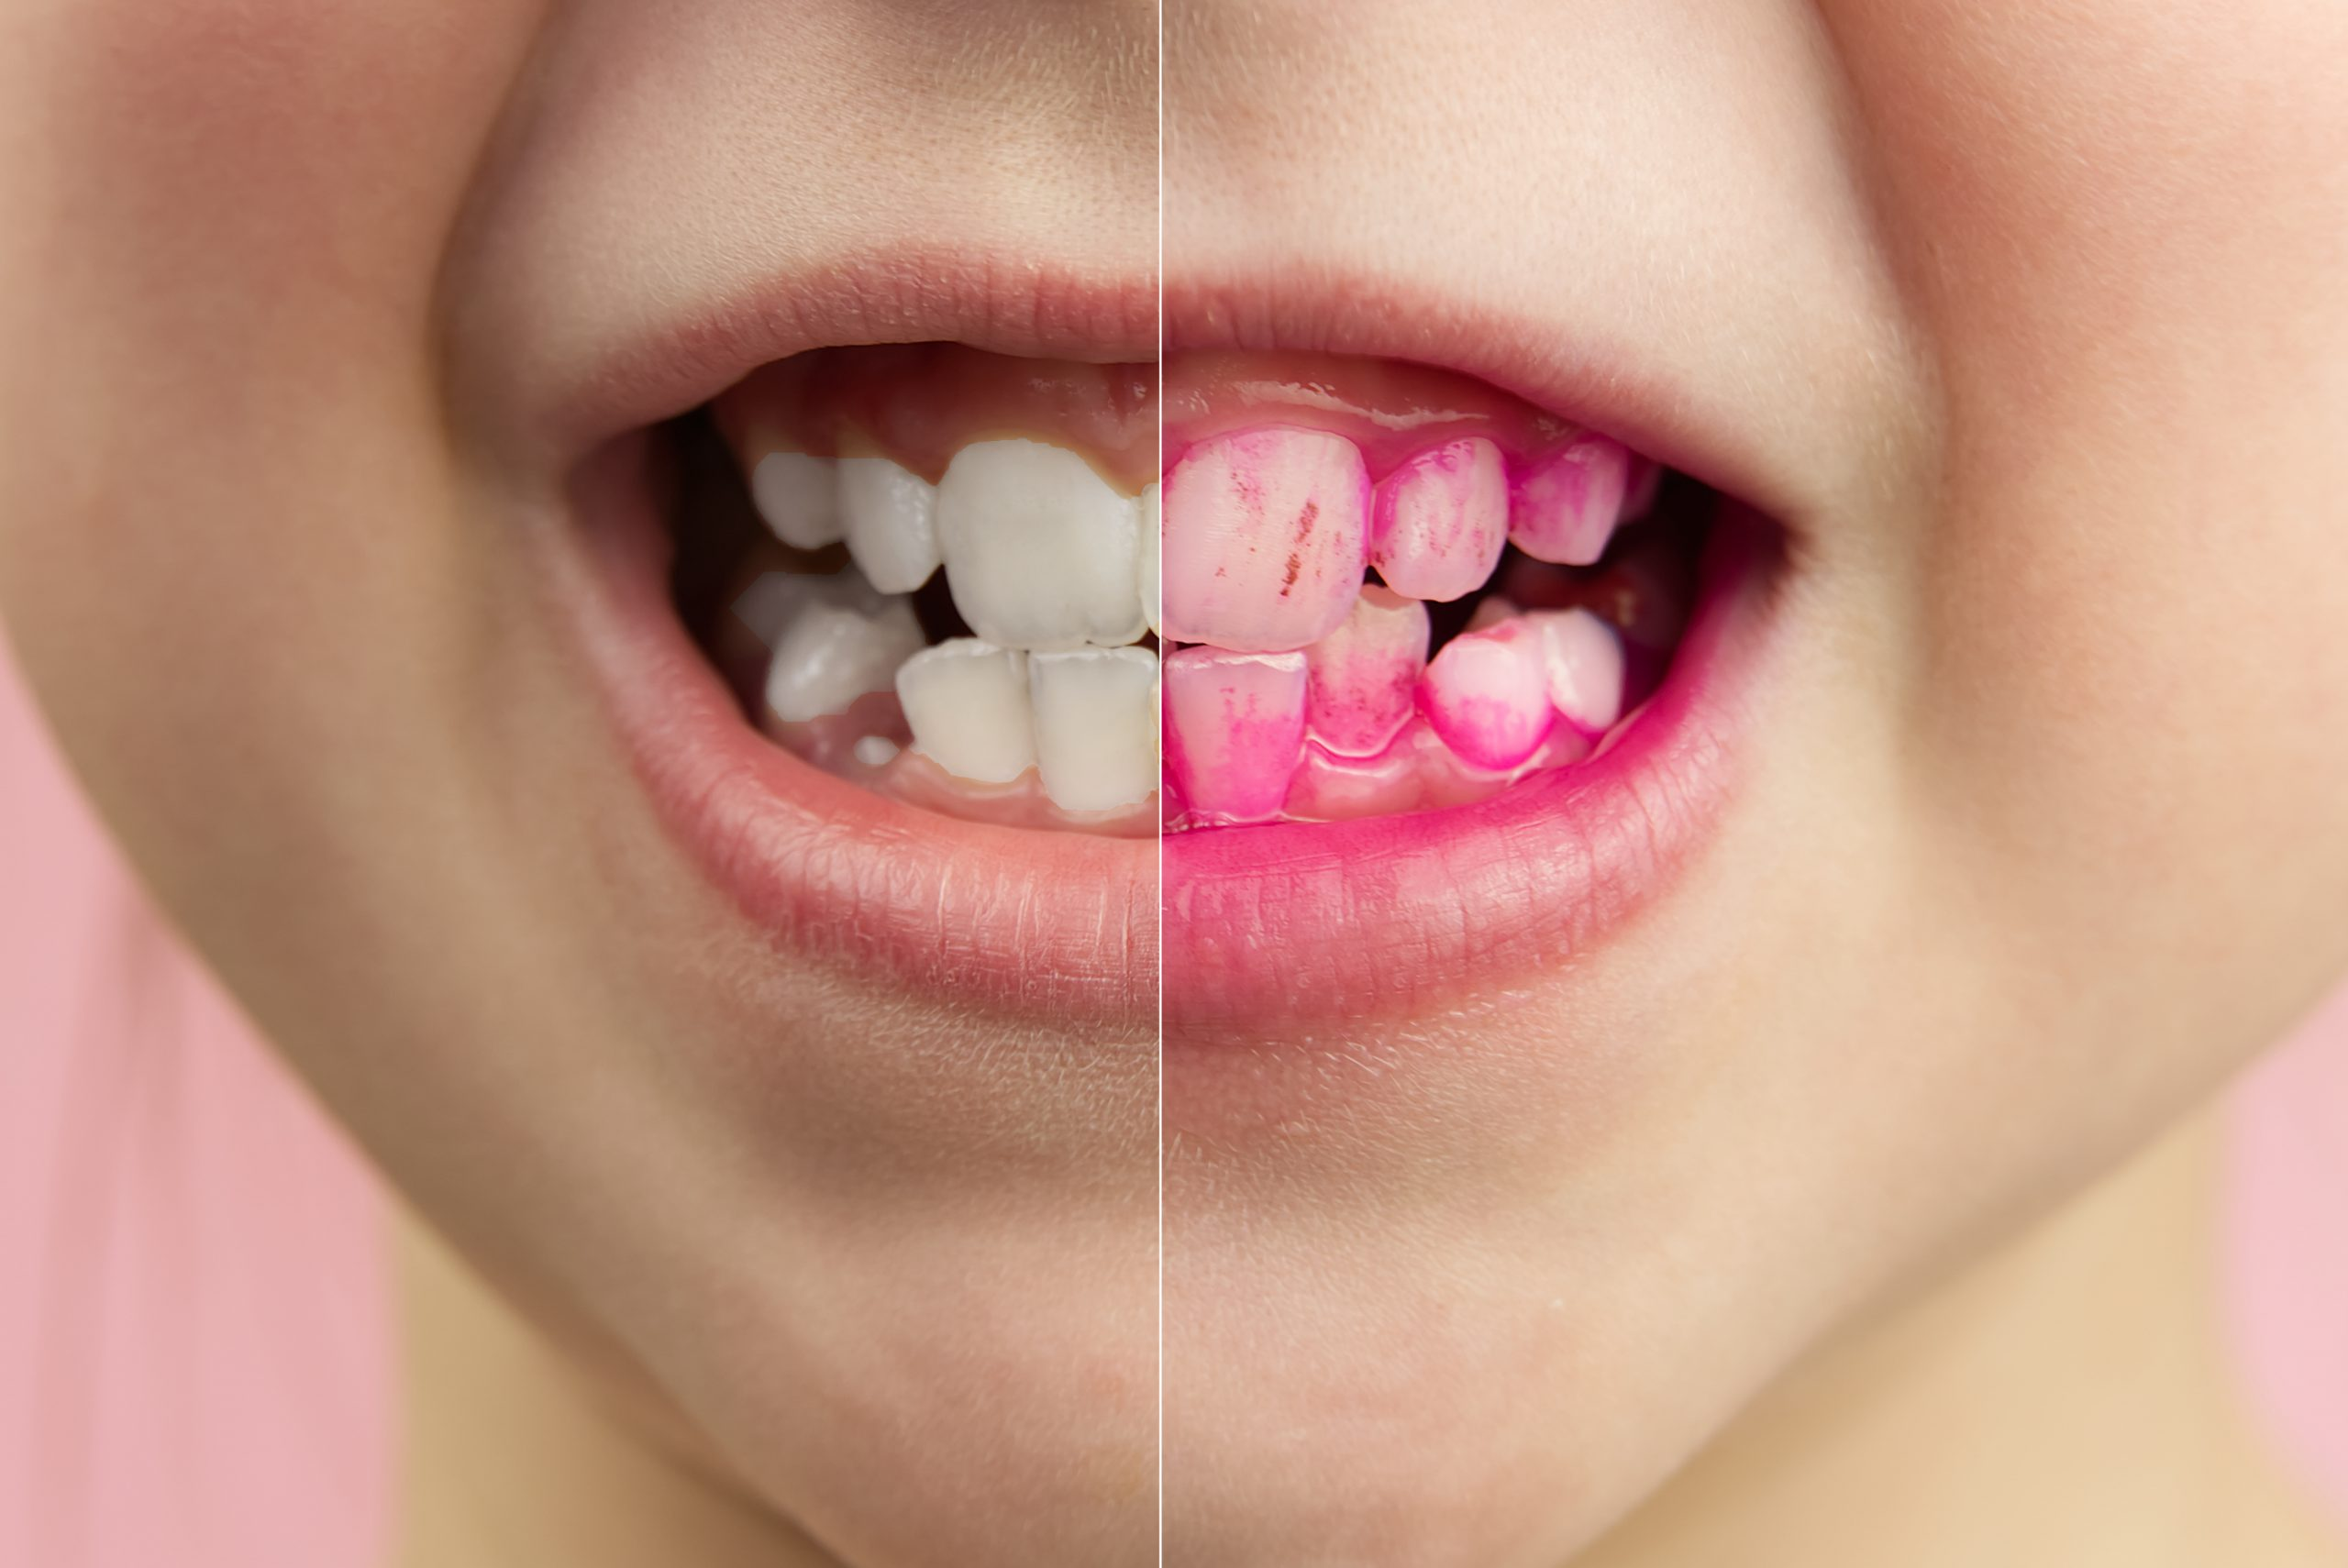 Plaque disclosing tablets in work. Before and after - effect. close up photo of young boy tooth. Dental plaque pill concept.